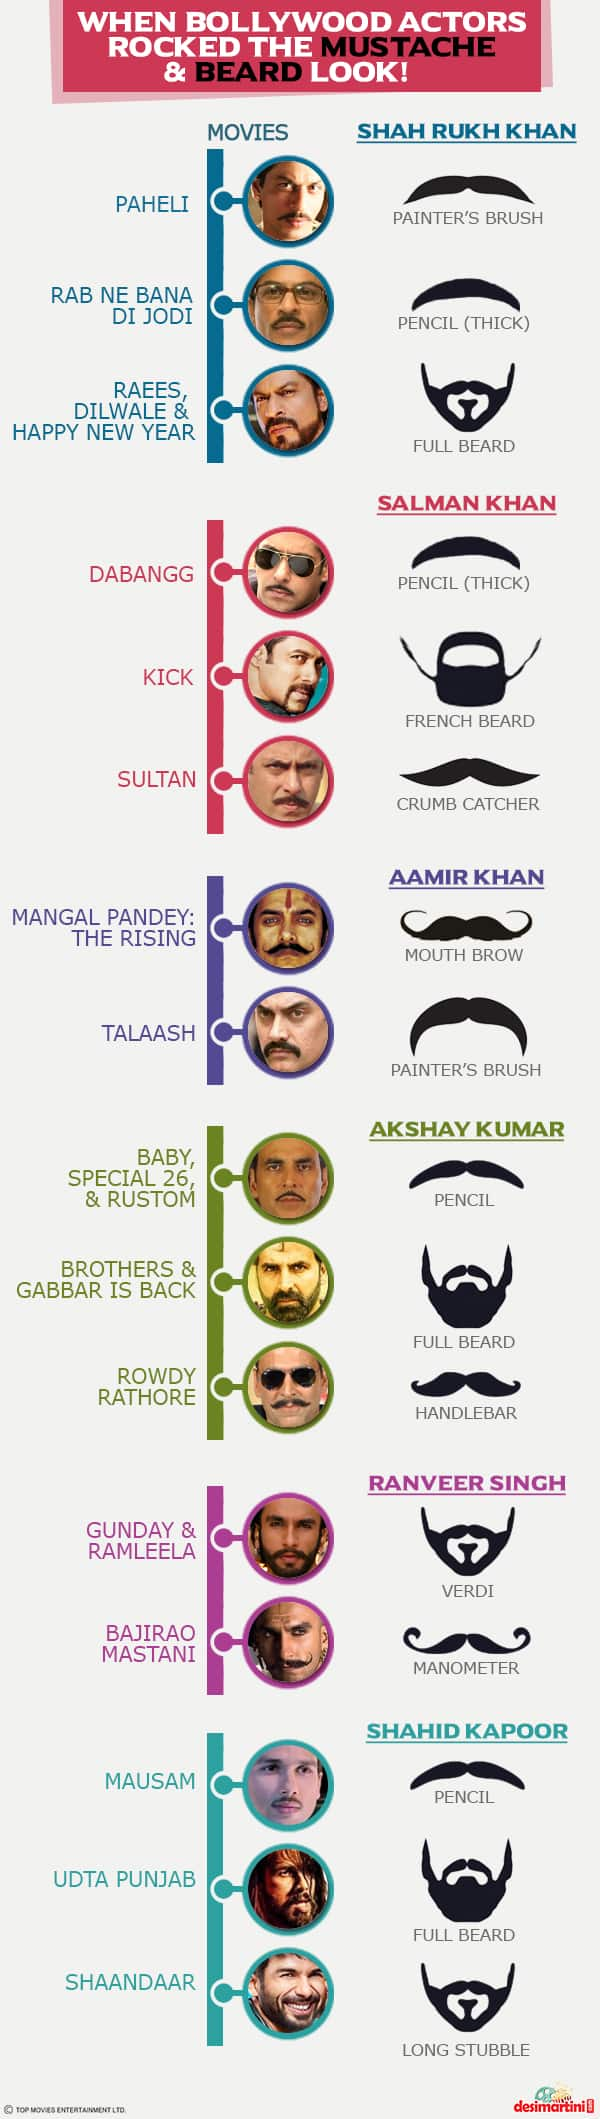 5 Bollywood Actors Who Floored Us With Their Unique Mustache And Beard Looks In Movies